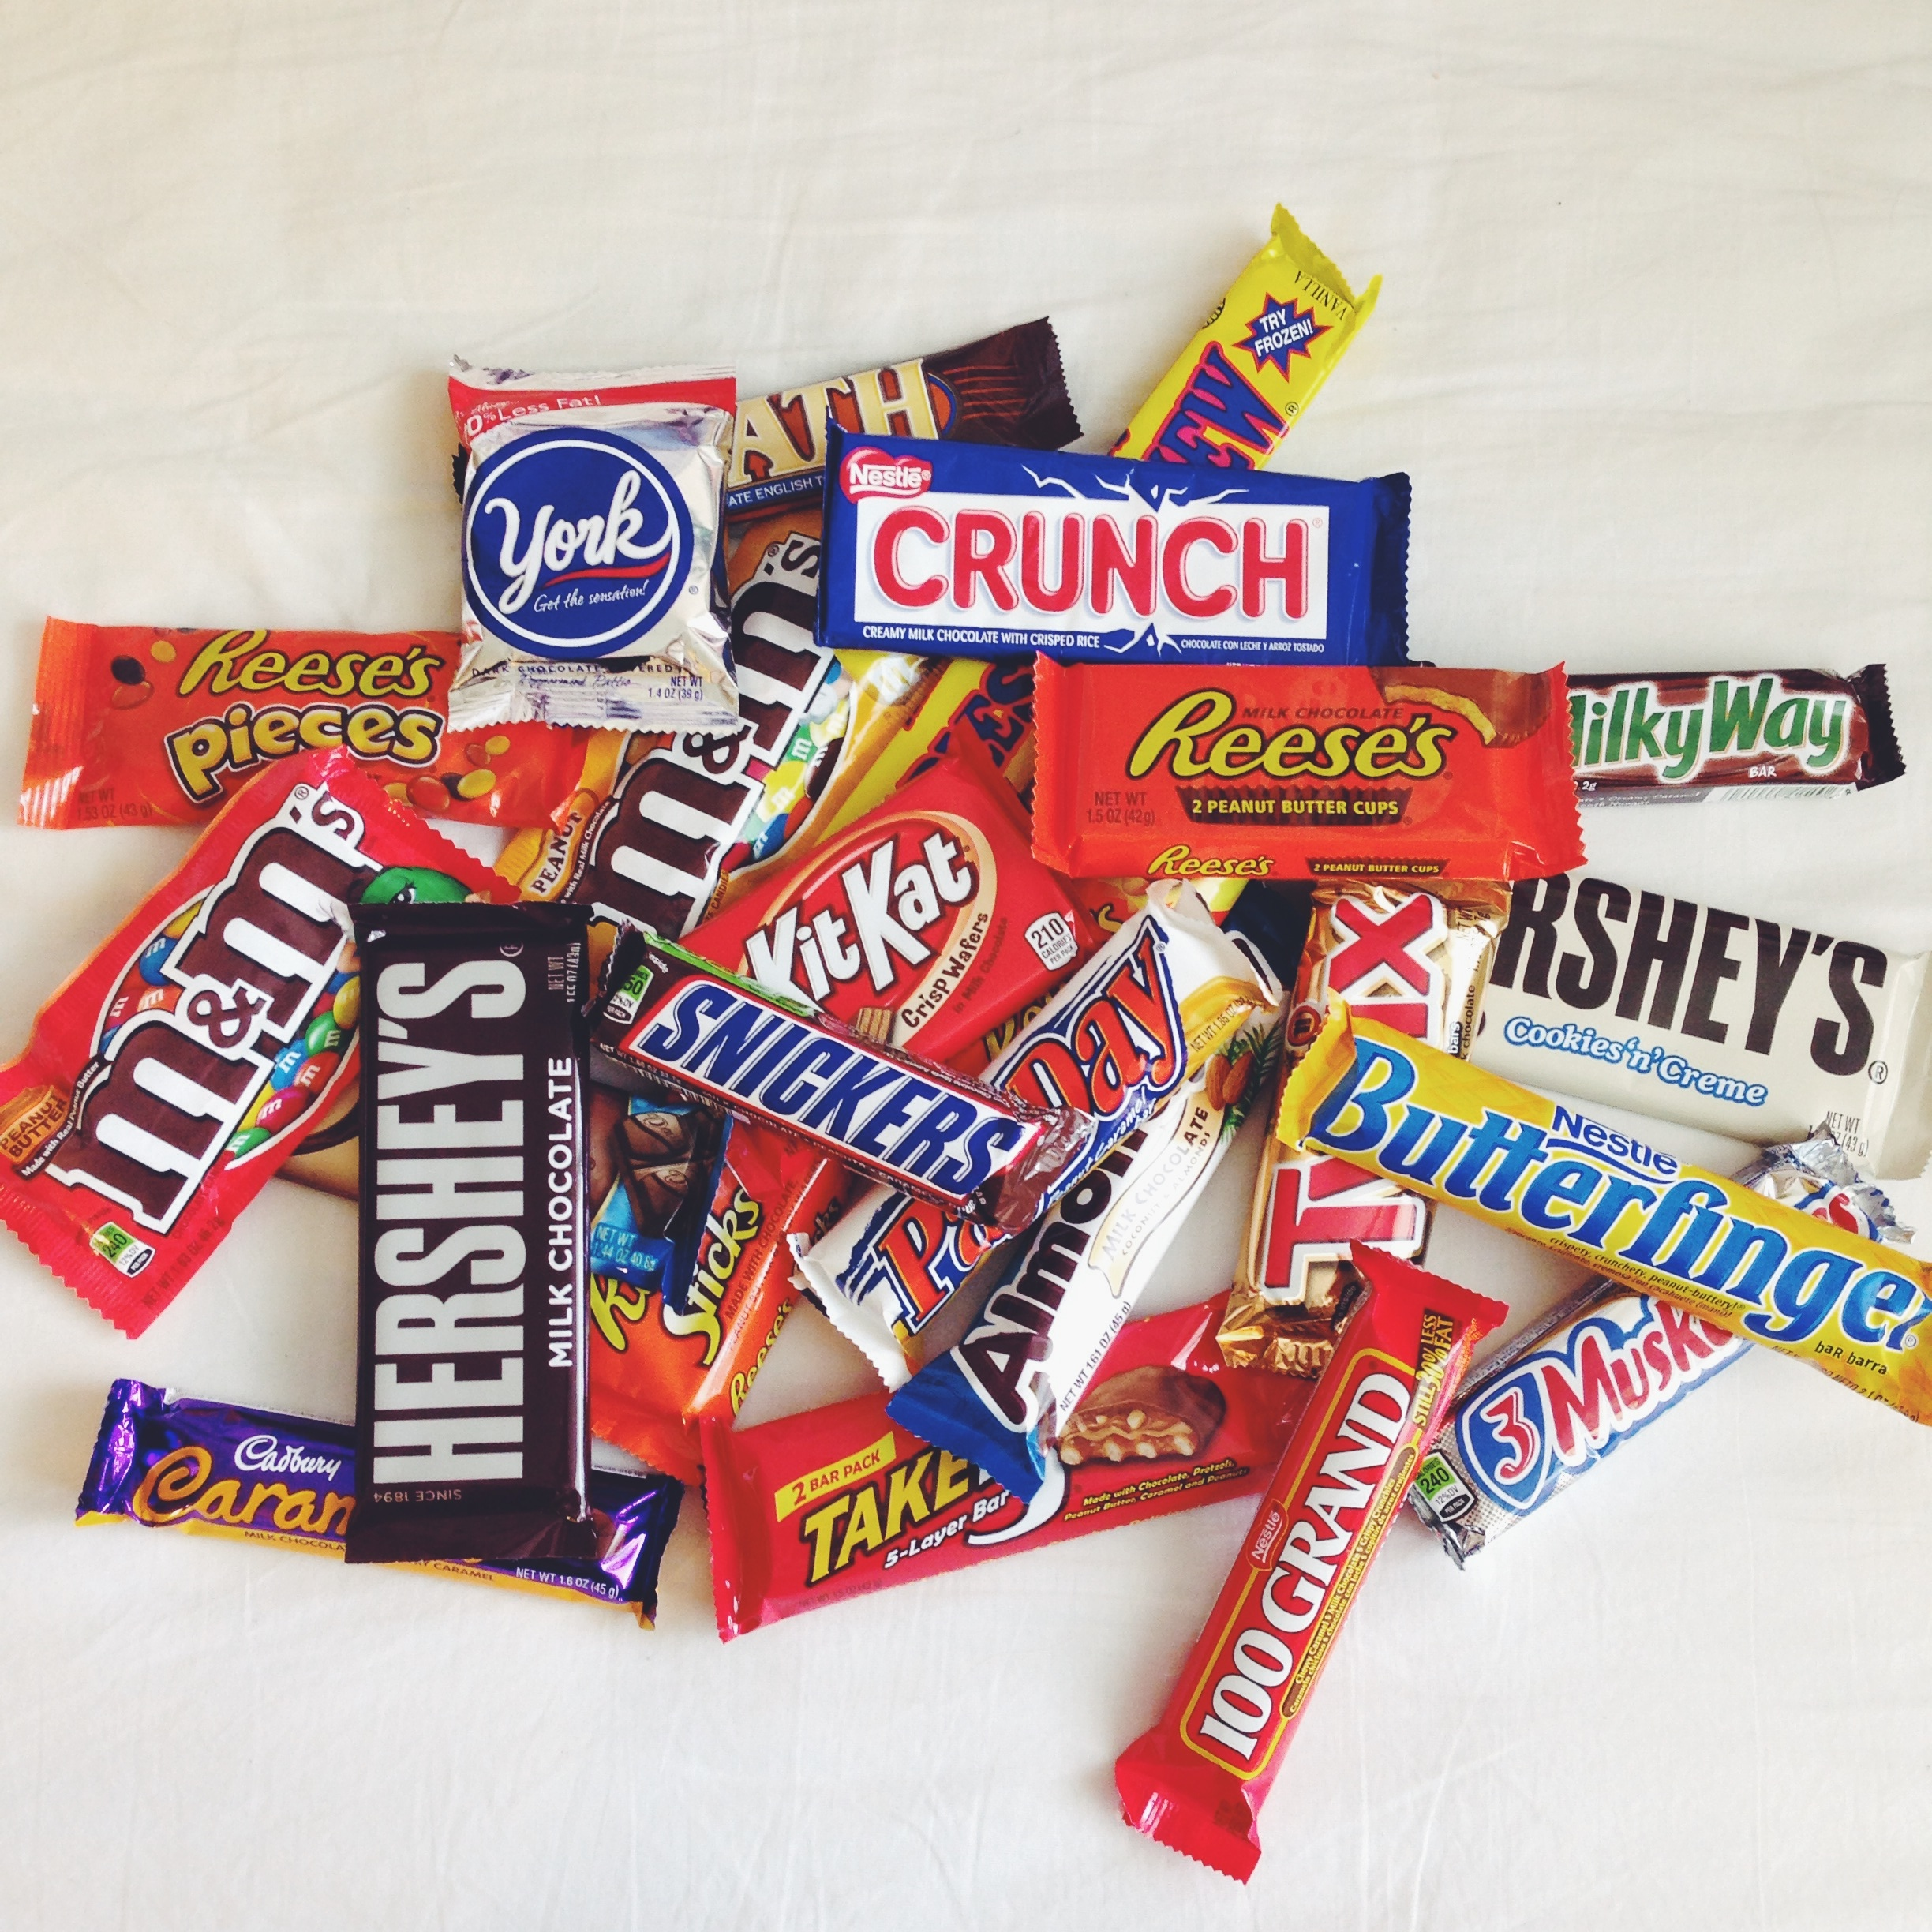 Chocolate candy bars brands